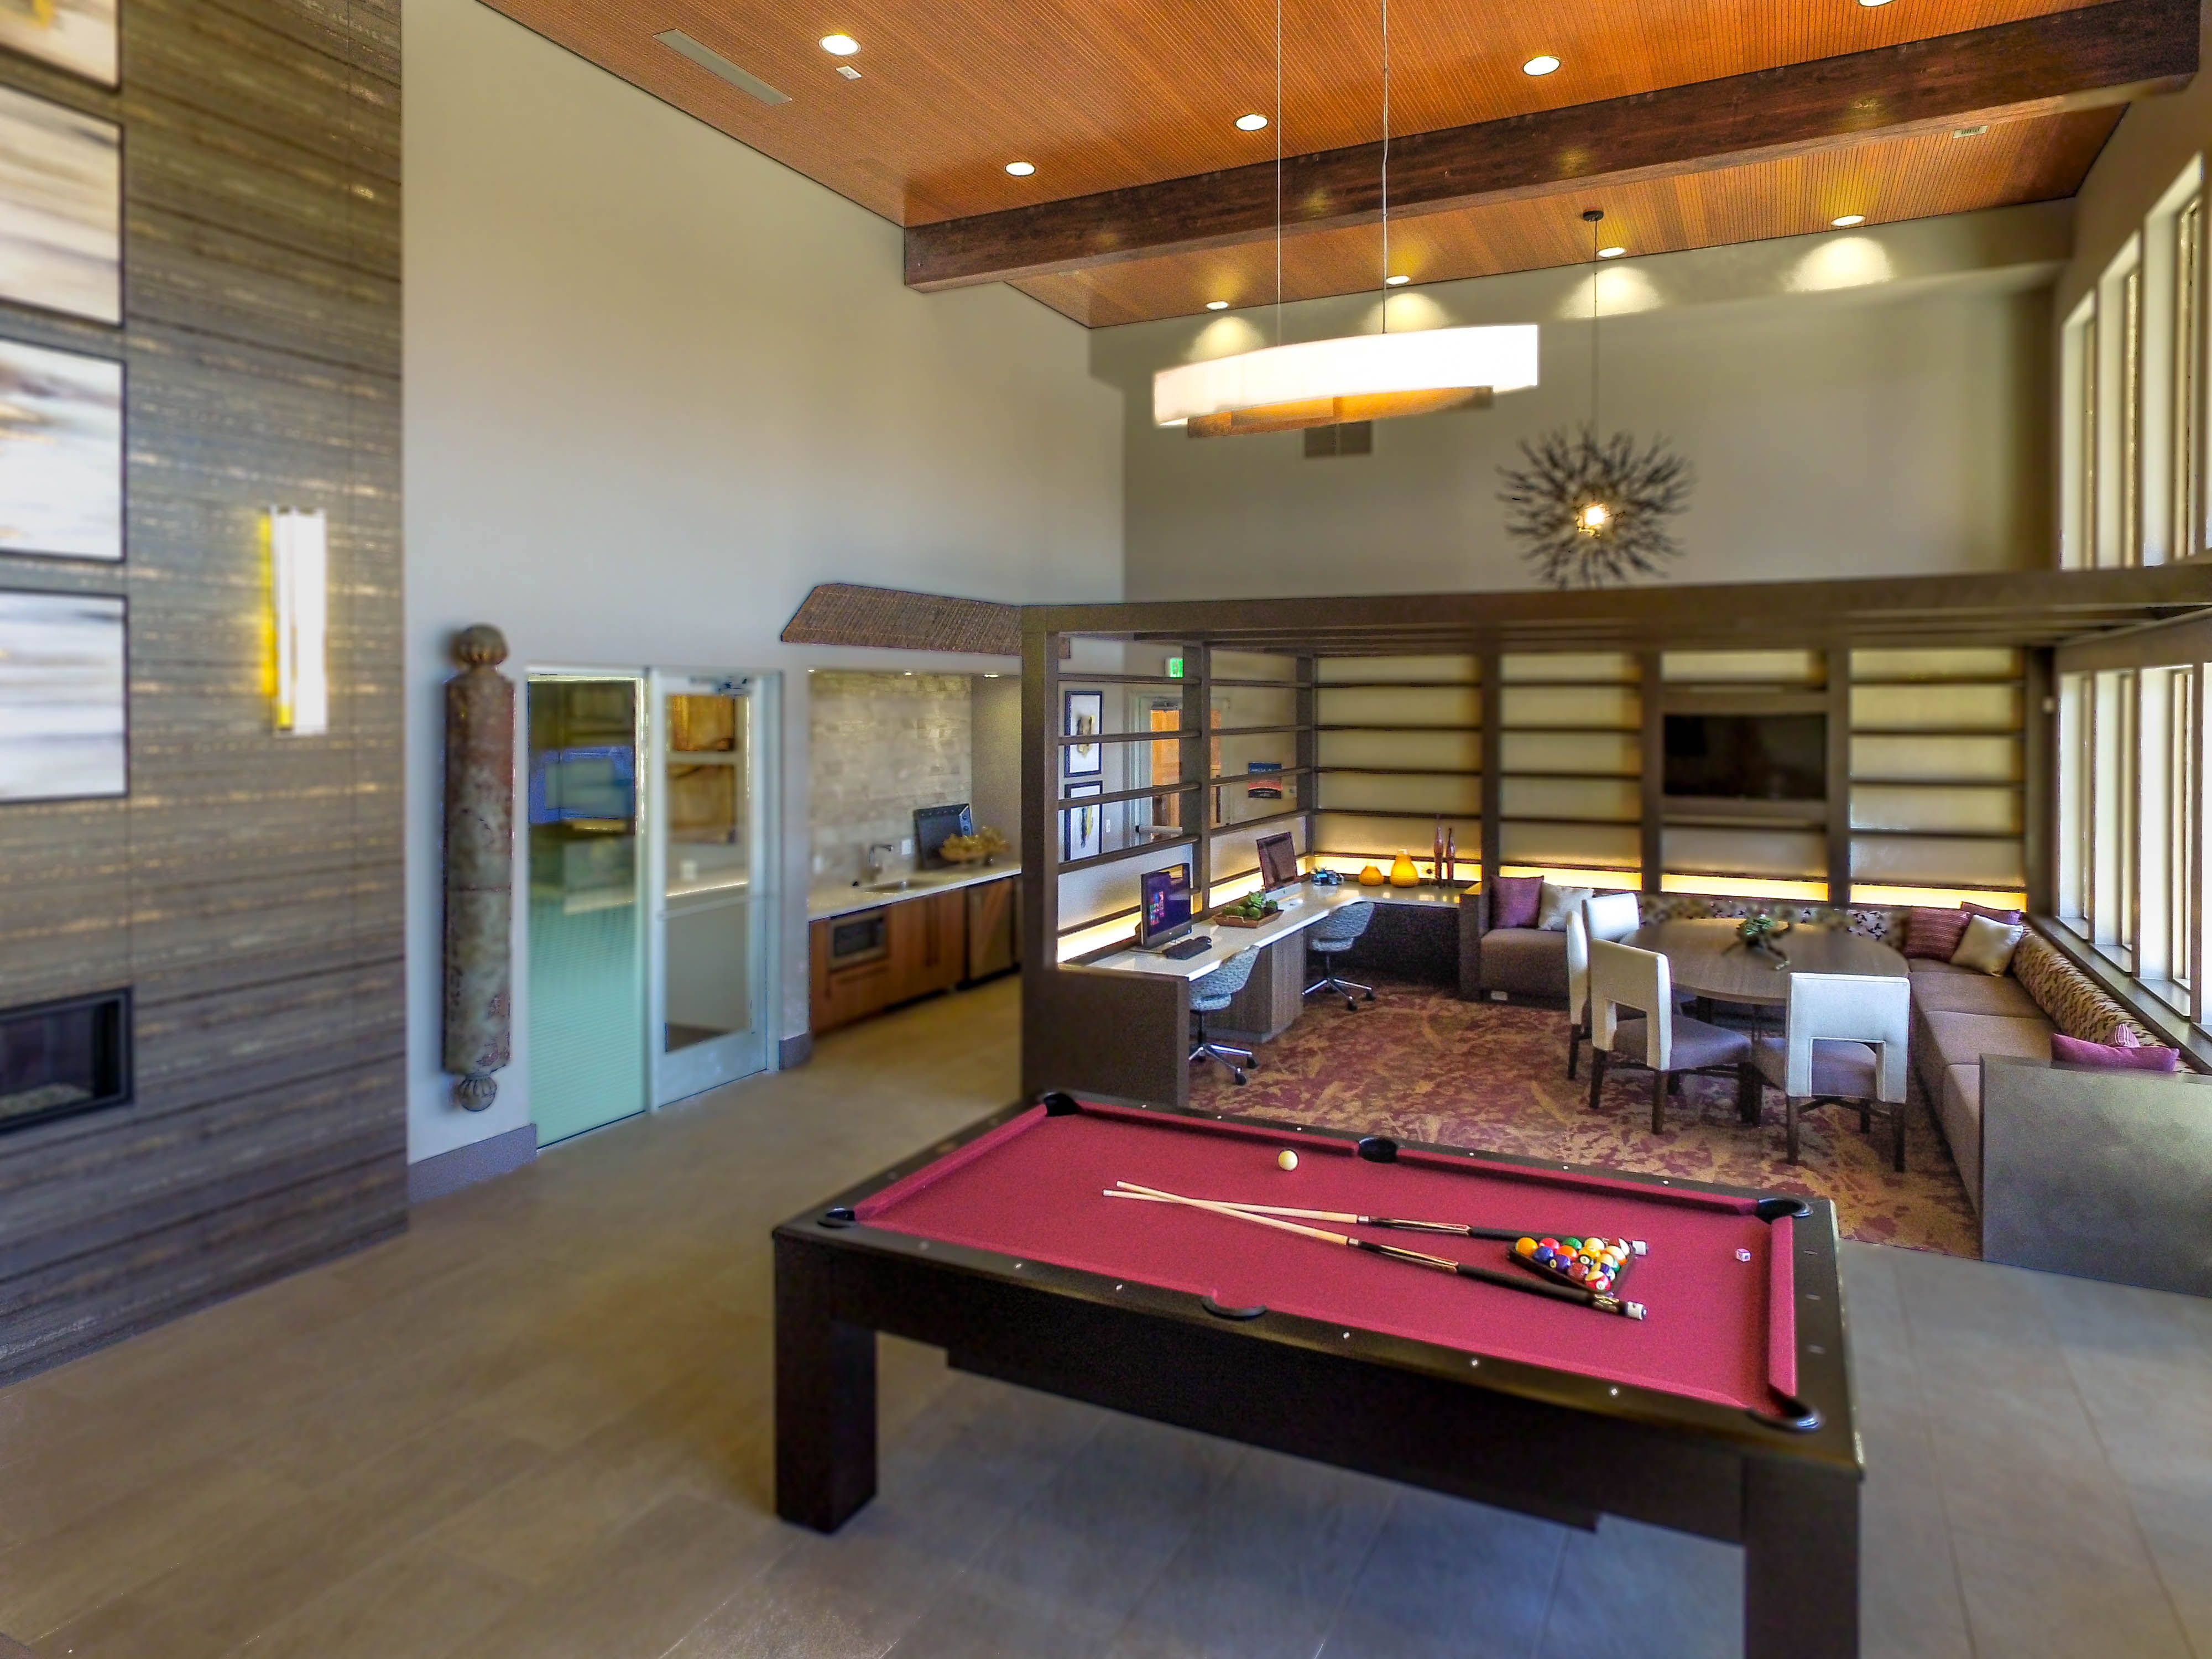 Modern Amenities And A Hip Atmosphere At Vela Meridian In South Denver